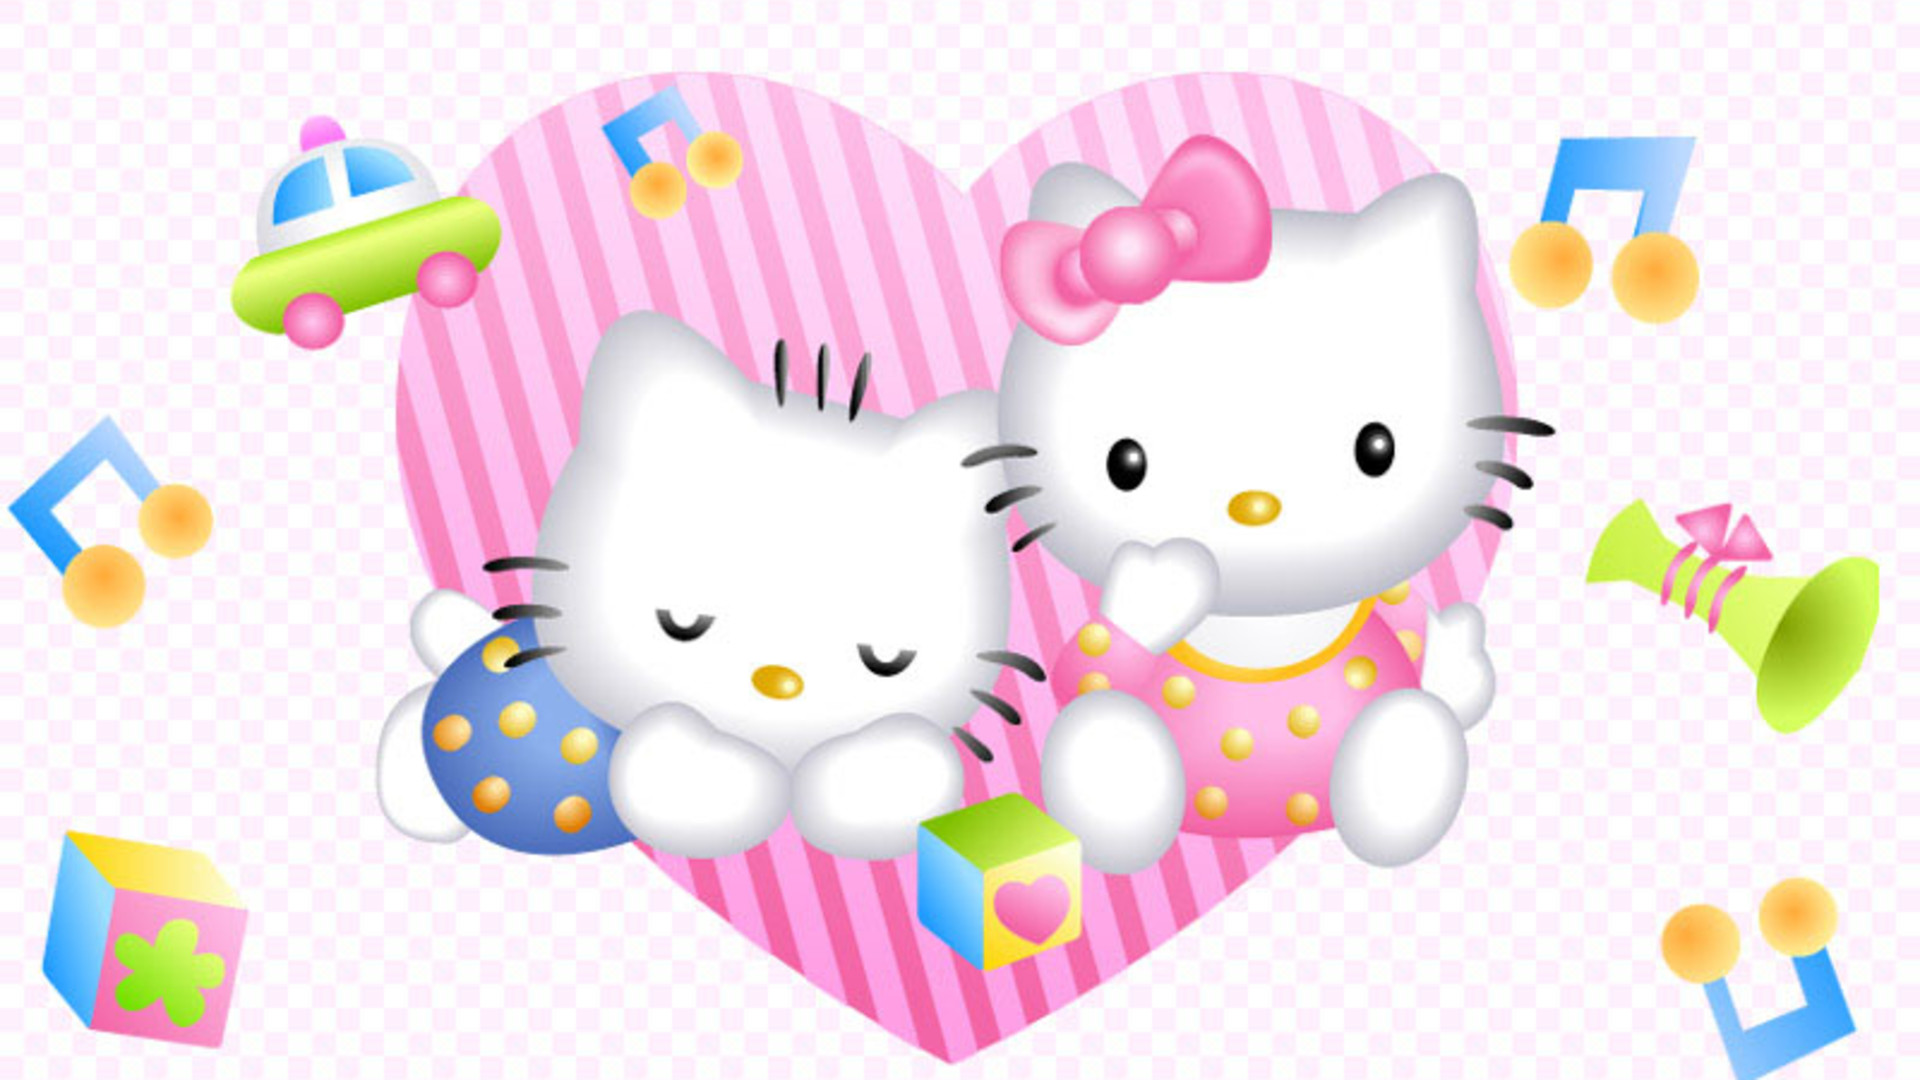 Hello Kitty Wallpaper Desktop 17406 Wallpaper Wallpaper hd 1920x1080